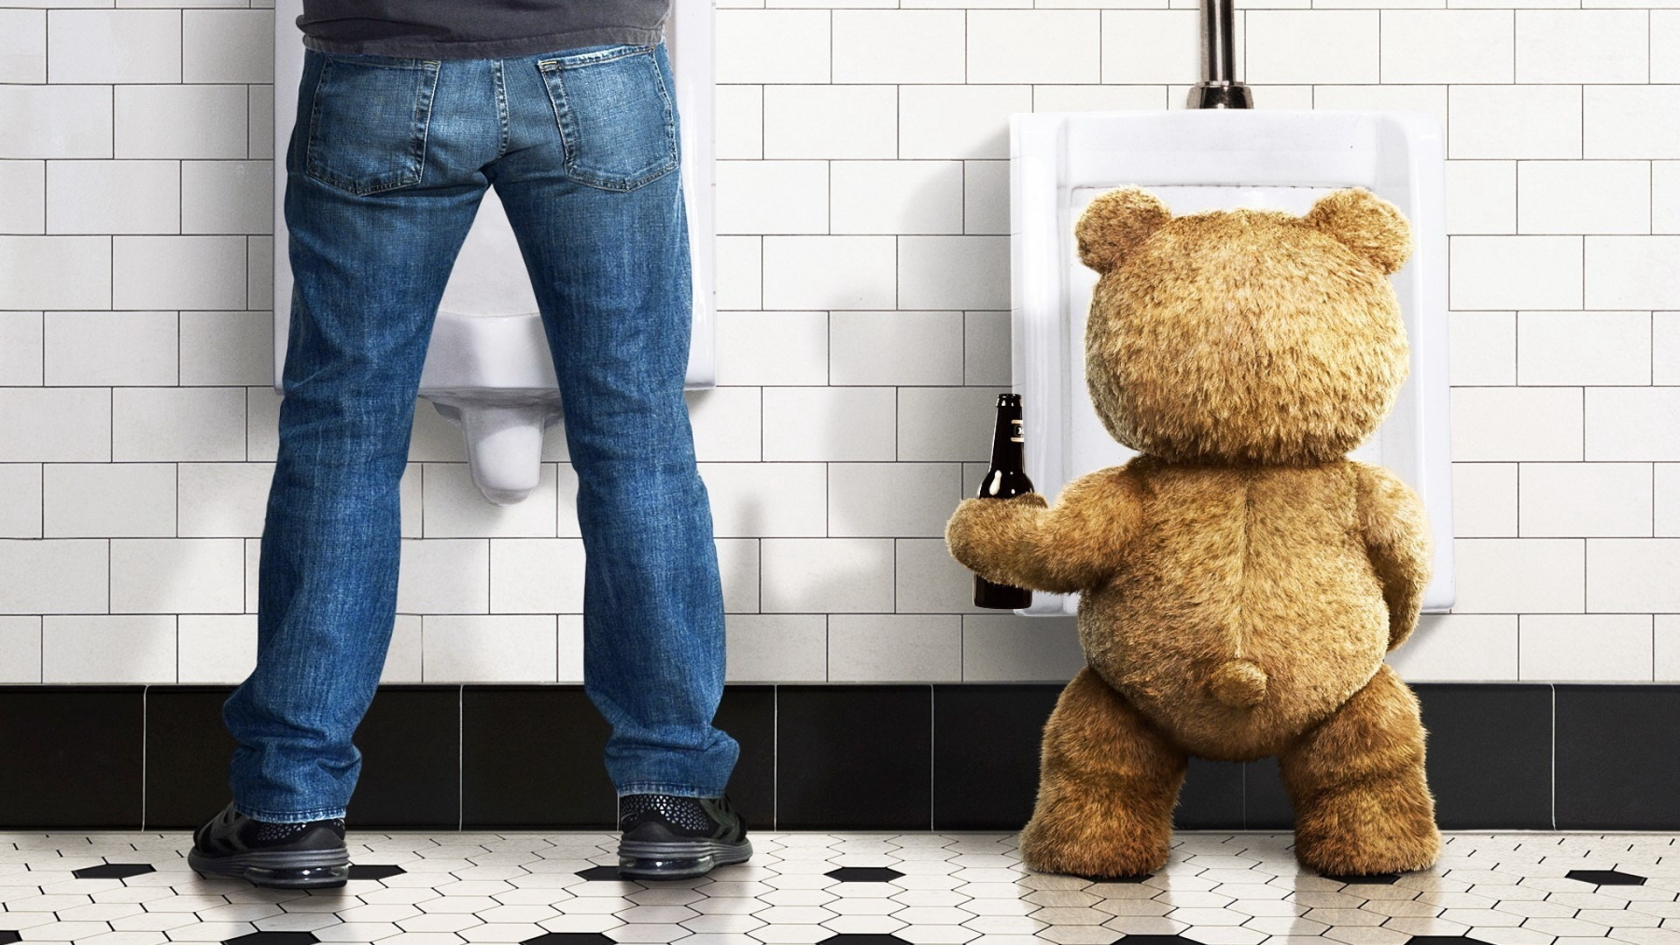 Ted Movie for 1680 x 945 HDTV resolution